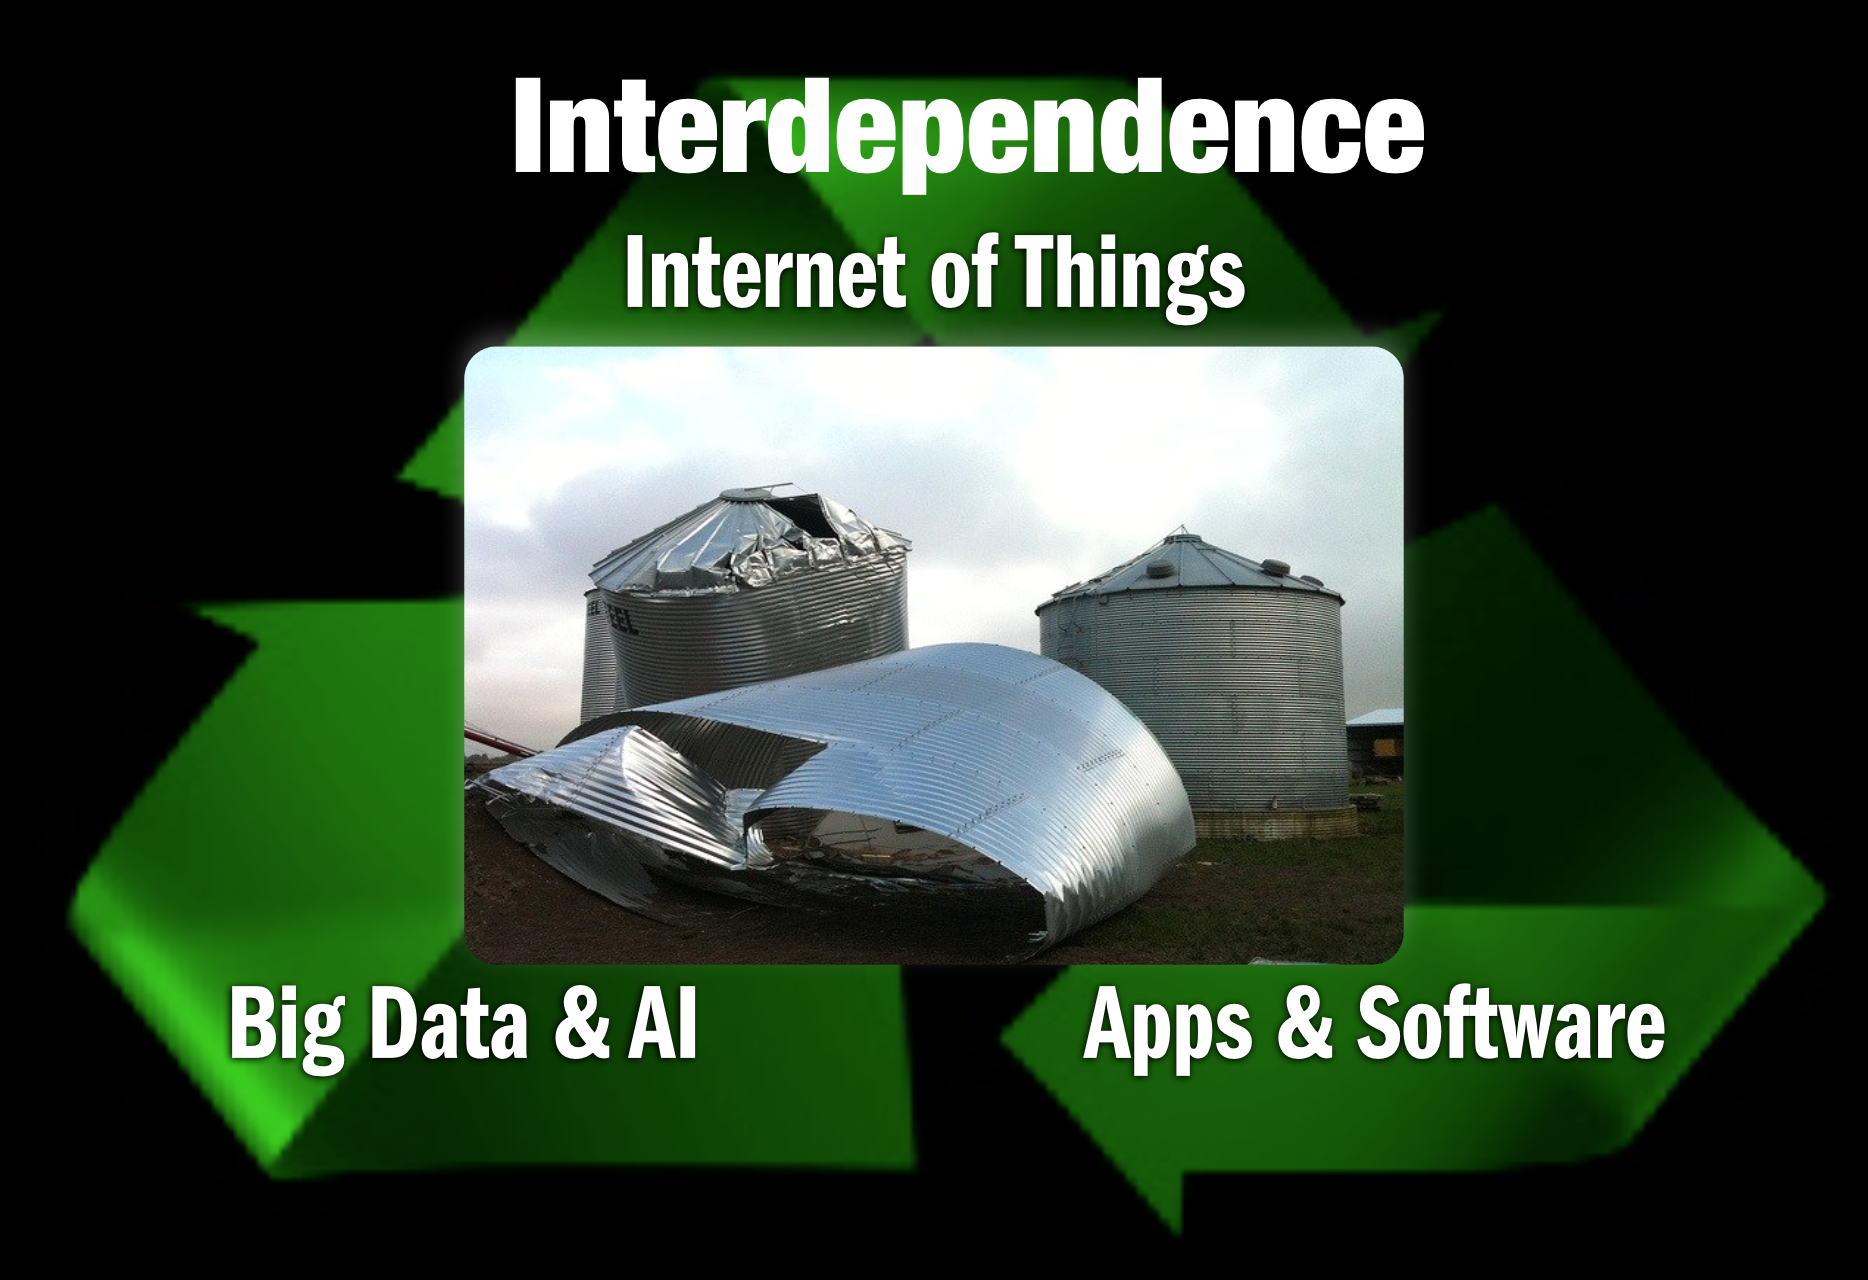 interdependence connected IoT big data apps